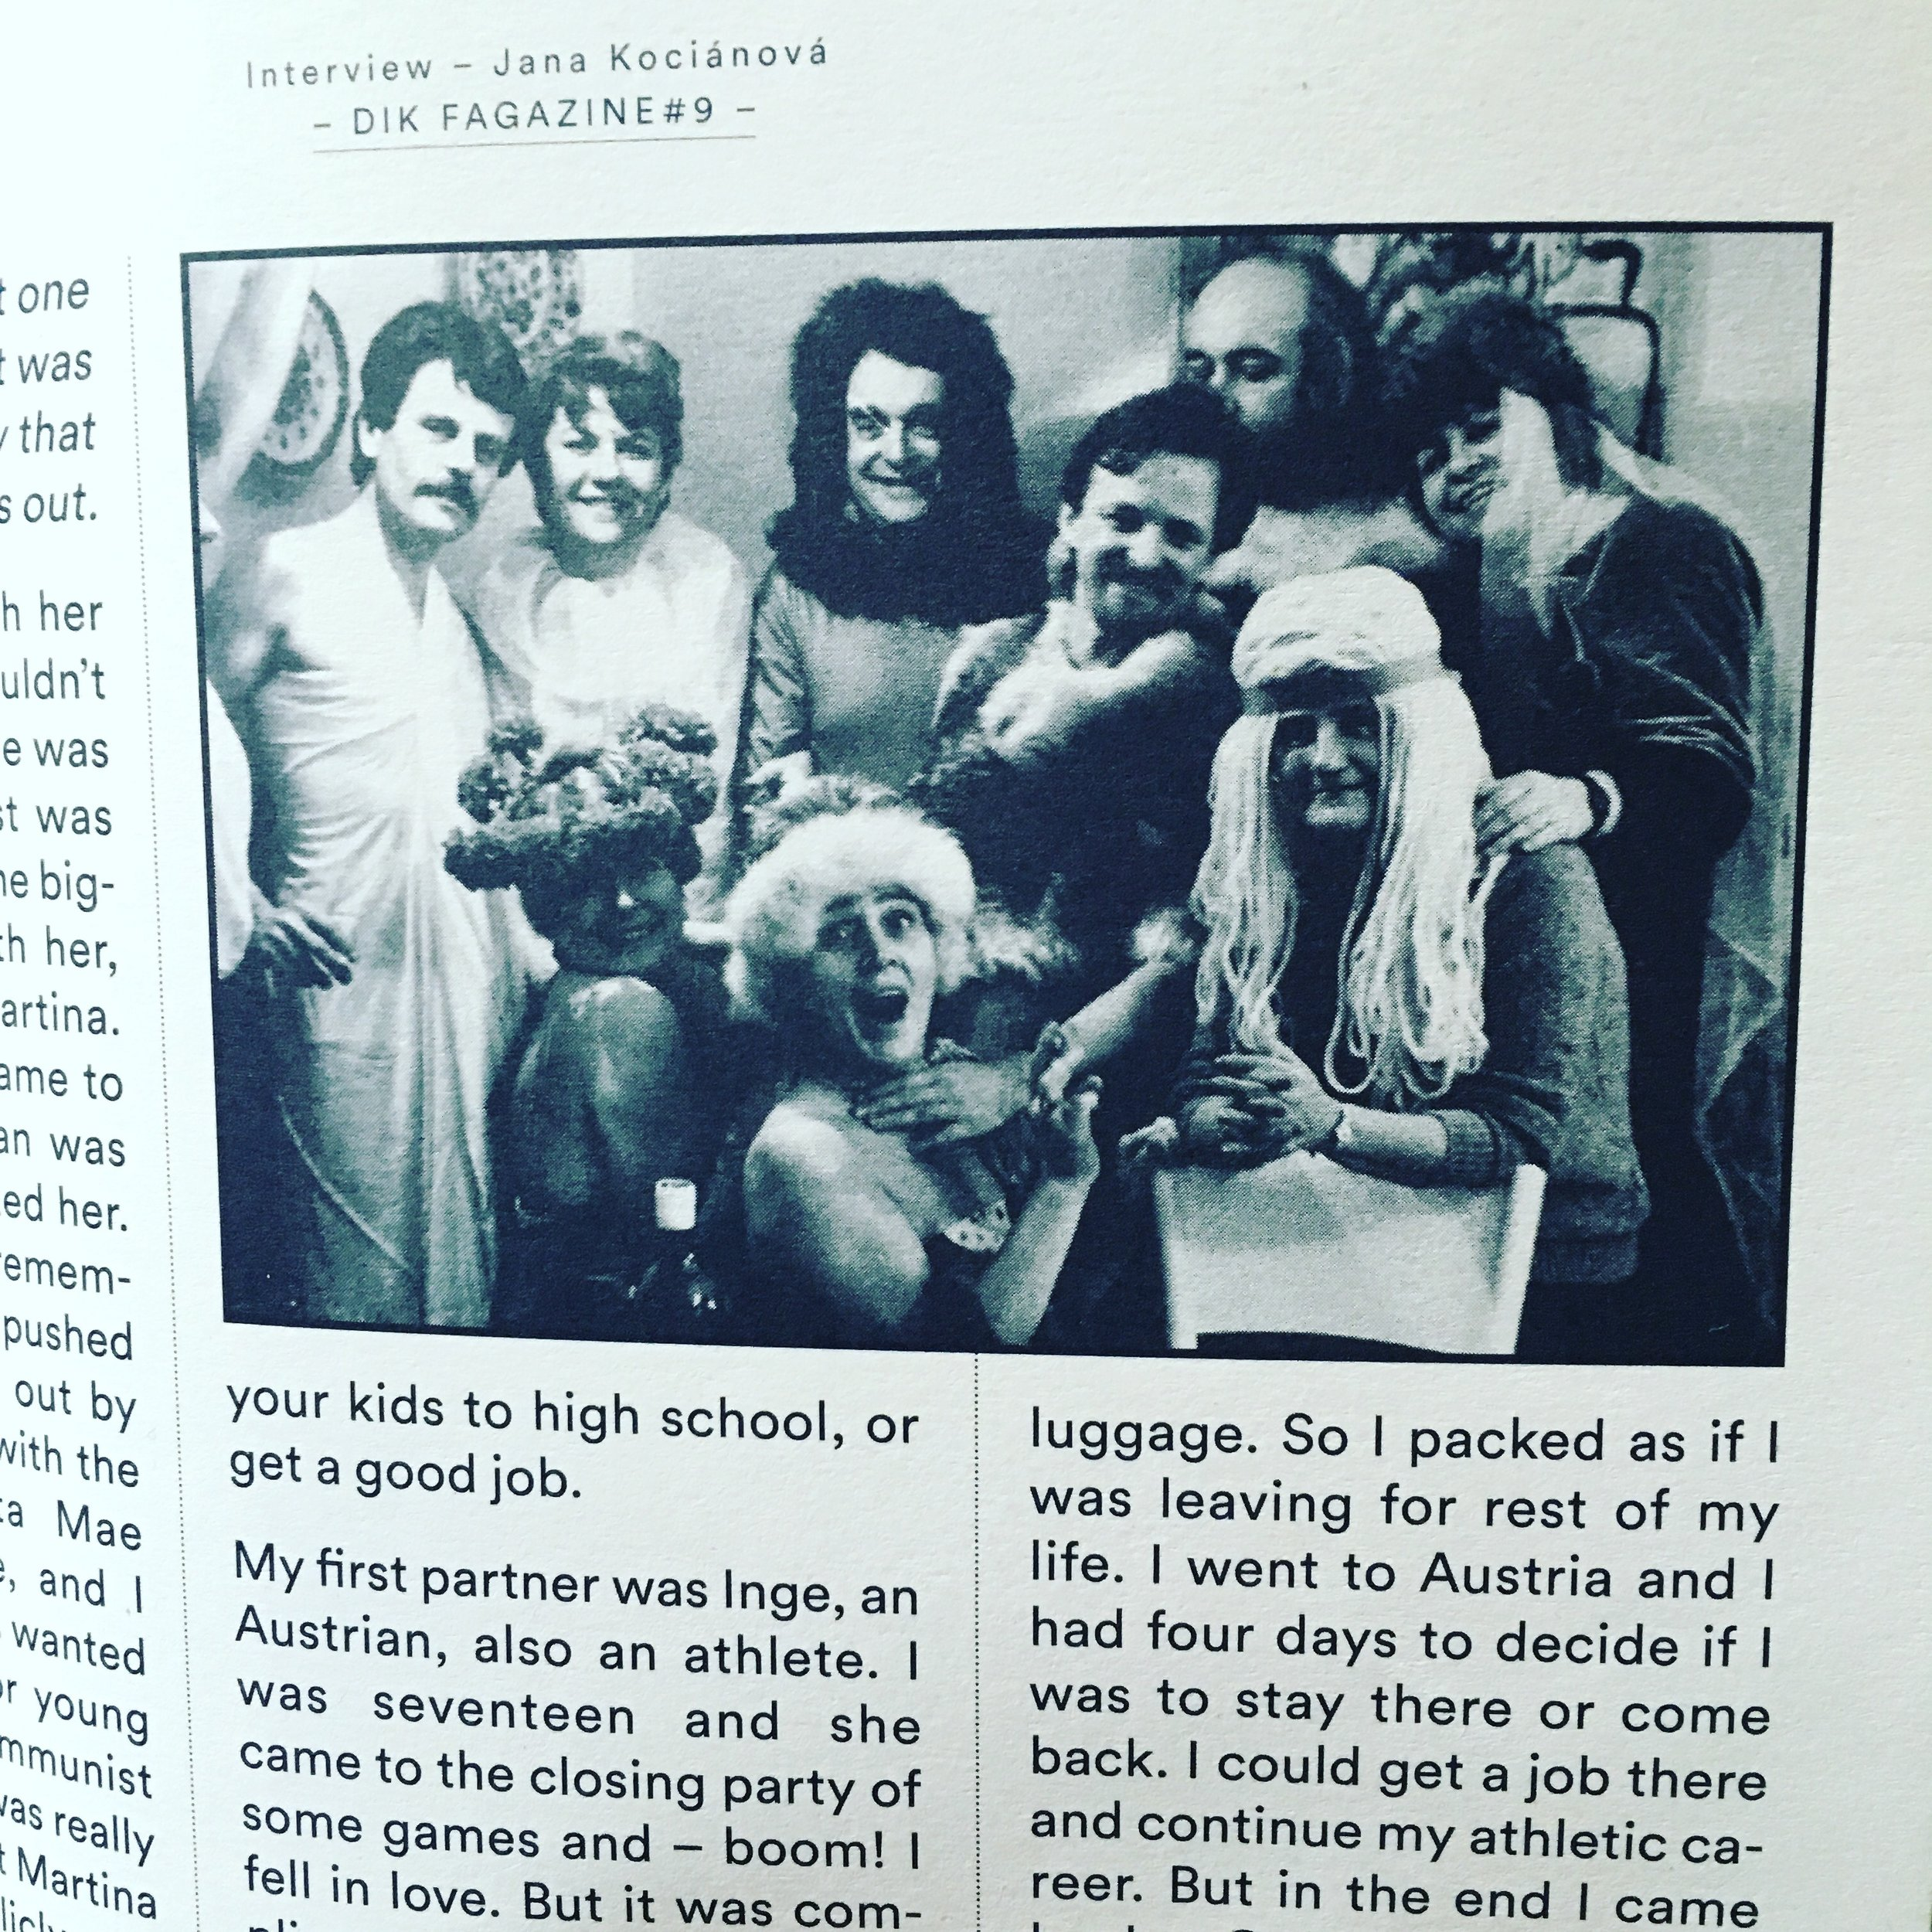 Picture and article by Dik Fagazine featuring Jana's story. The picture is from one of the parties held by Jana and her friends during the 1970s, when freedom of expression was still restricted by the Communist regime.